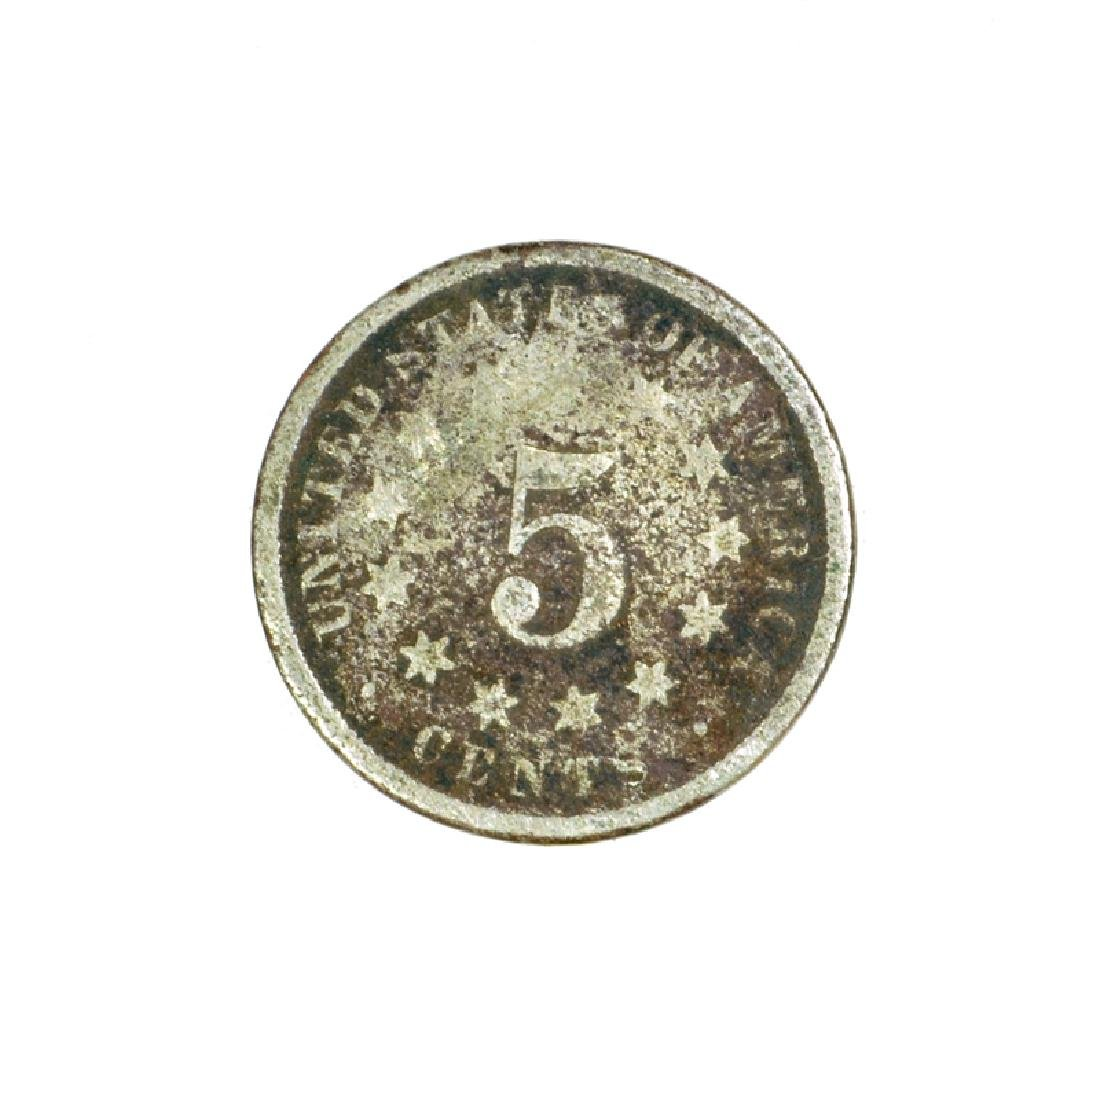 1869 Nickel Five Cent Piece Coin